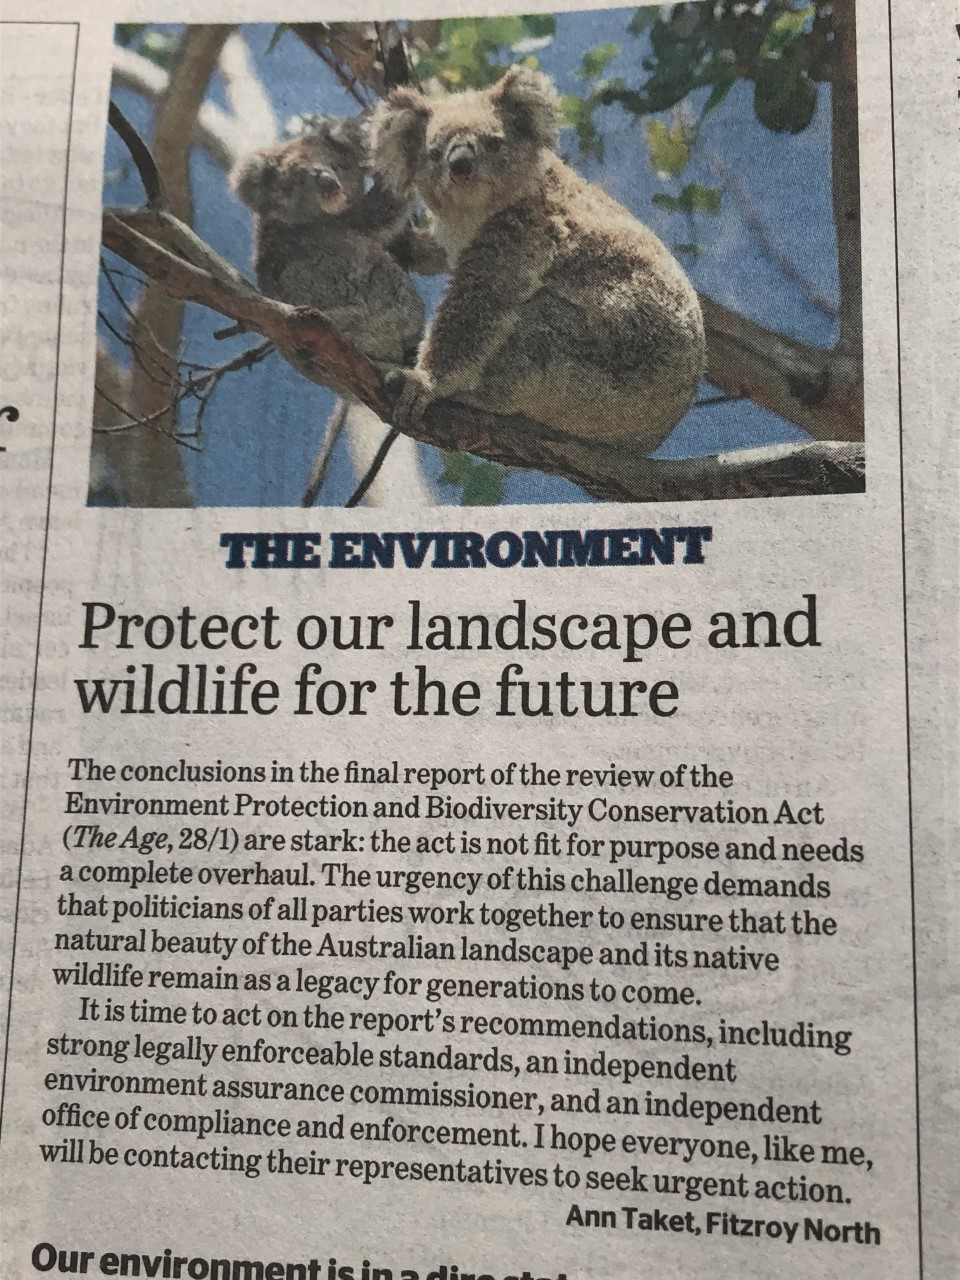 Letter to the editor published in the Age